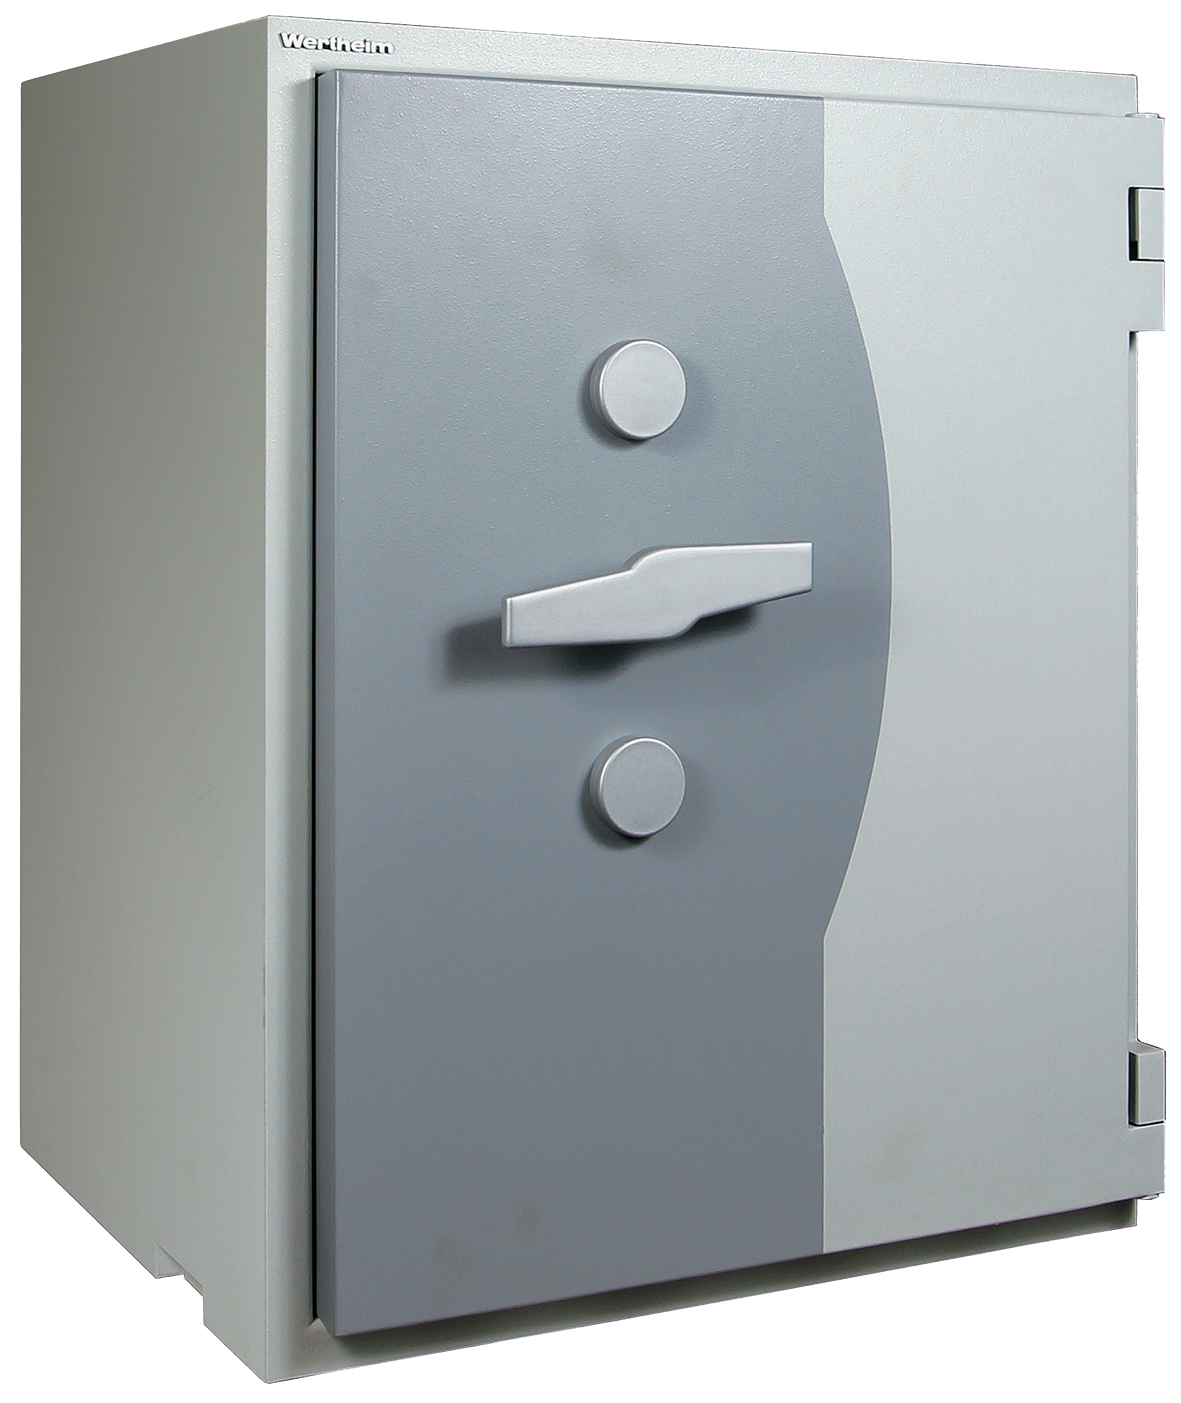 Wertheim Commercial Safes EWS0849KBR